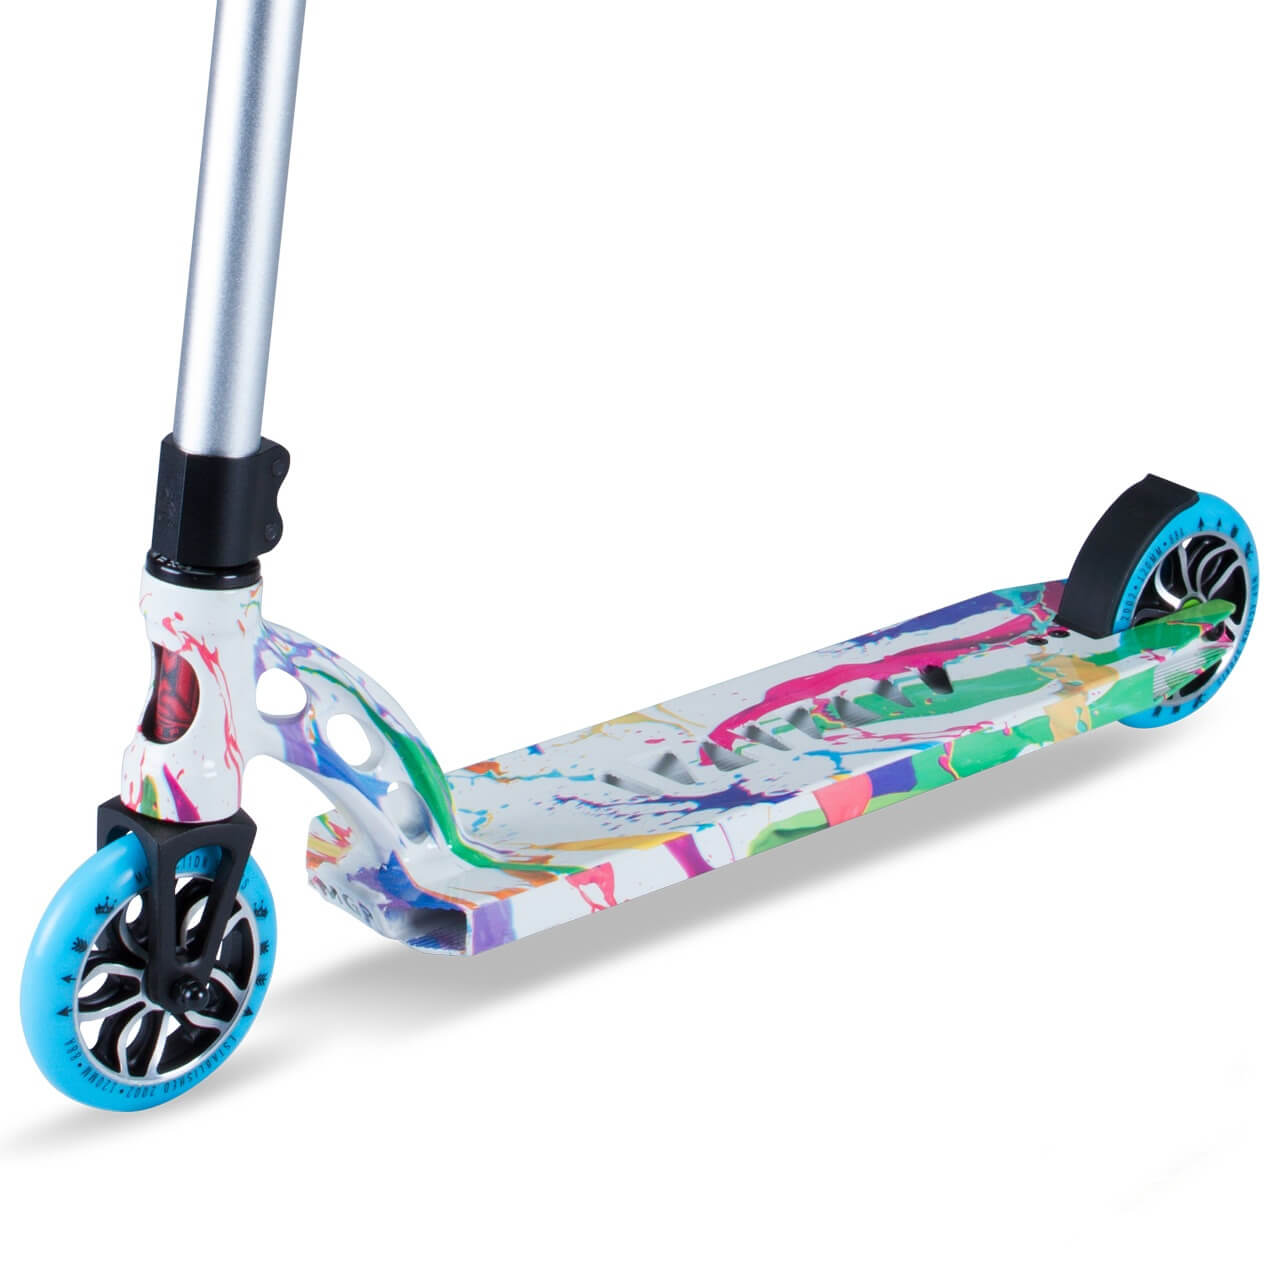 Best Kids Stunt Scooters   Stunt Scooter Buying Guide 20